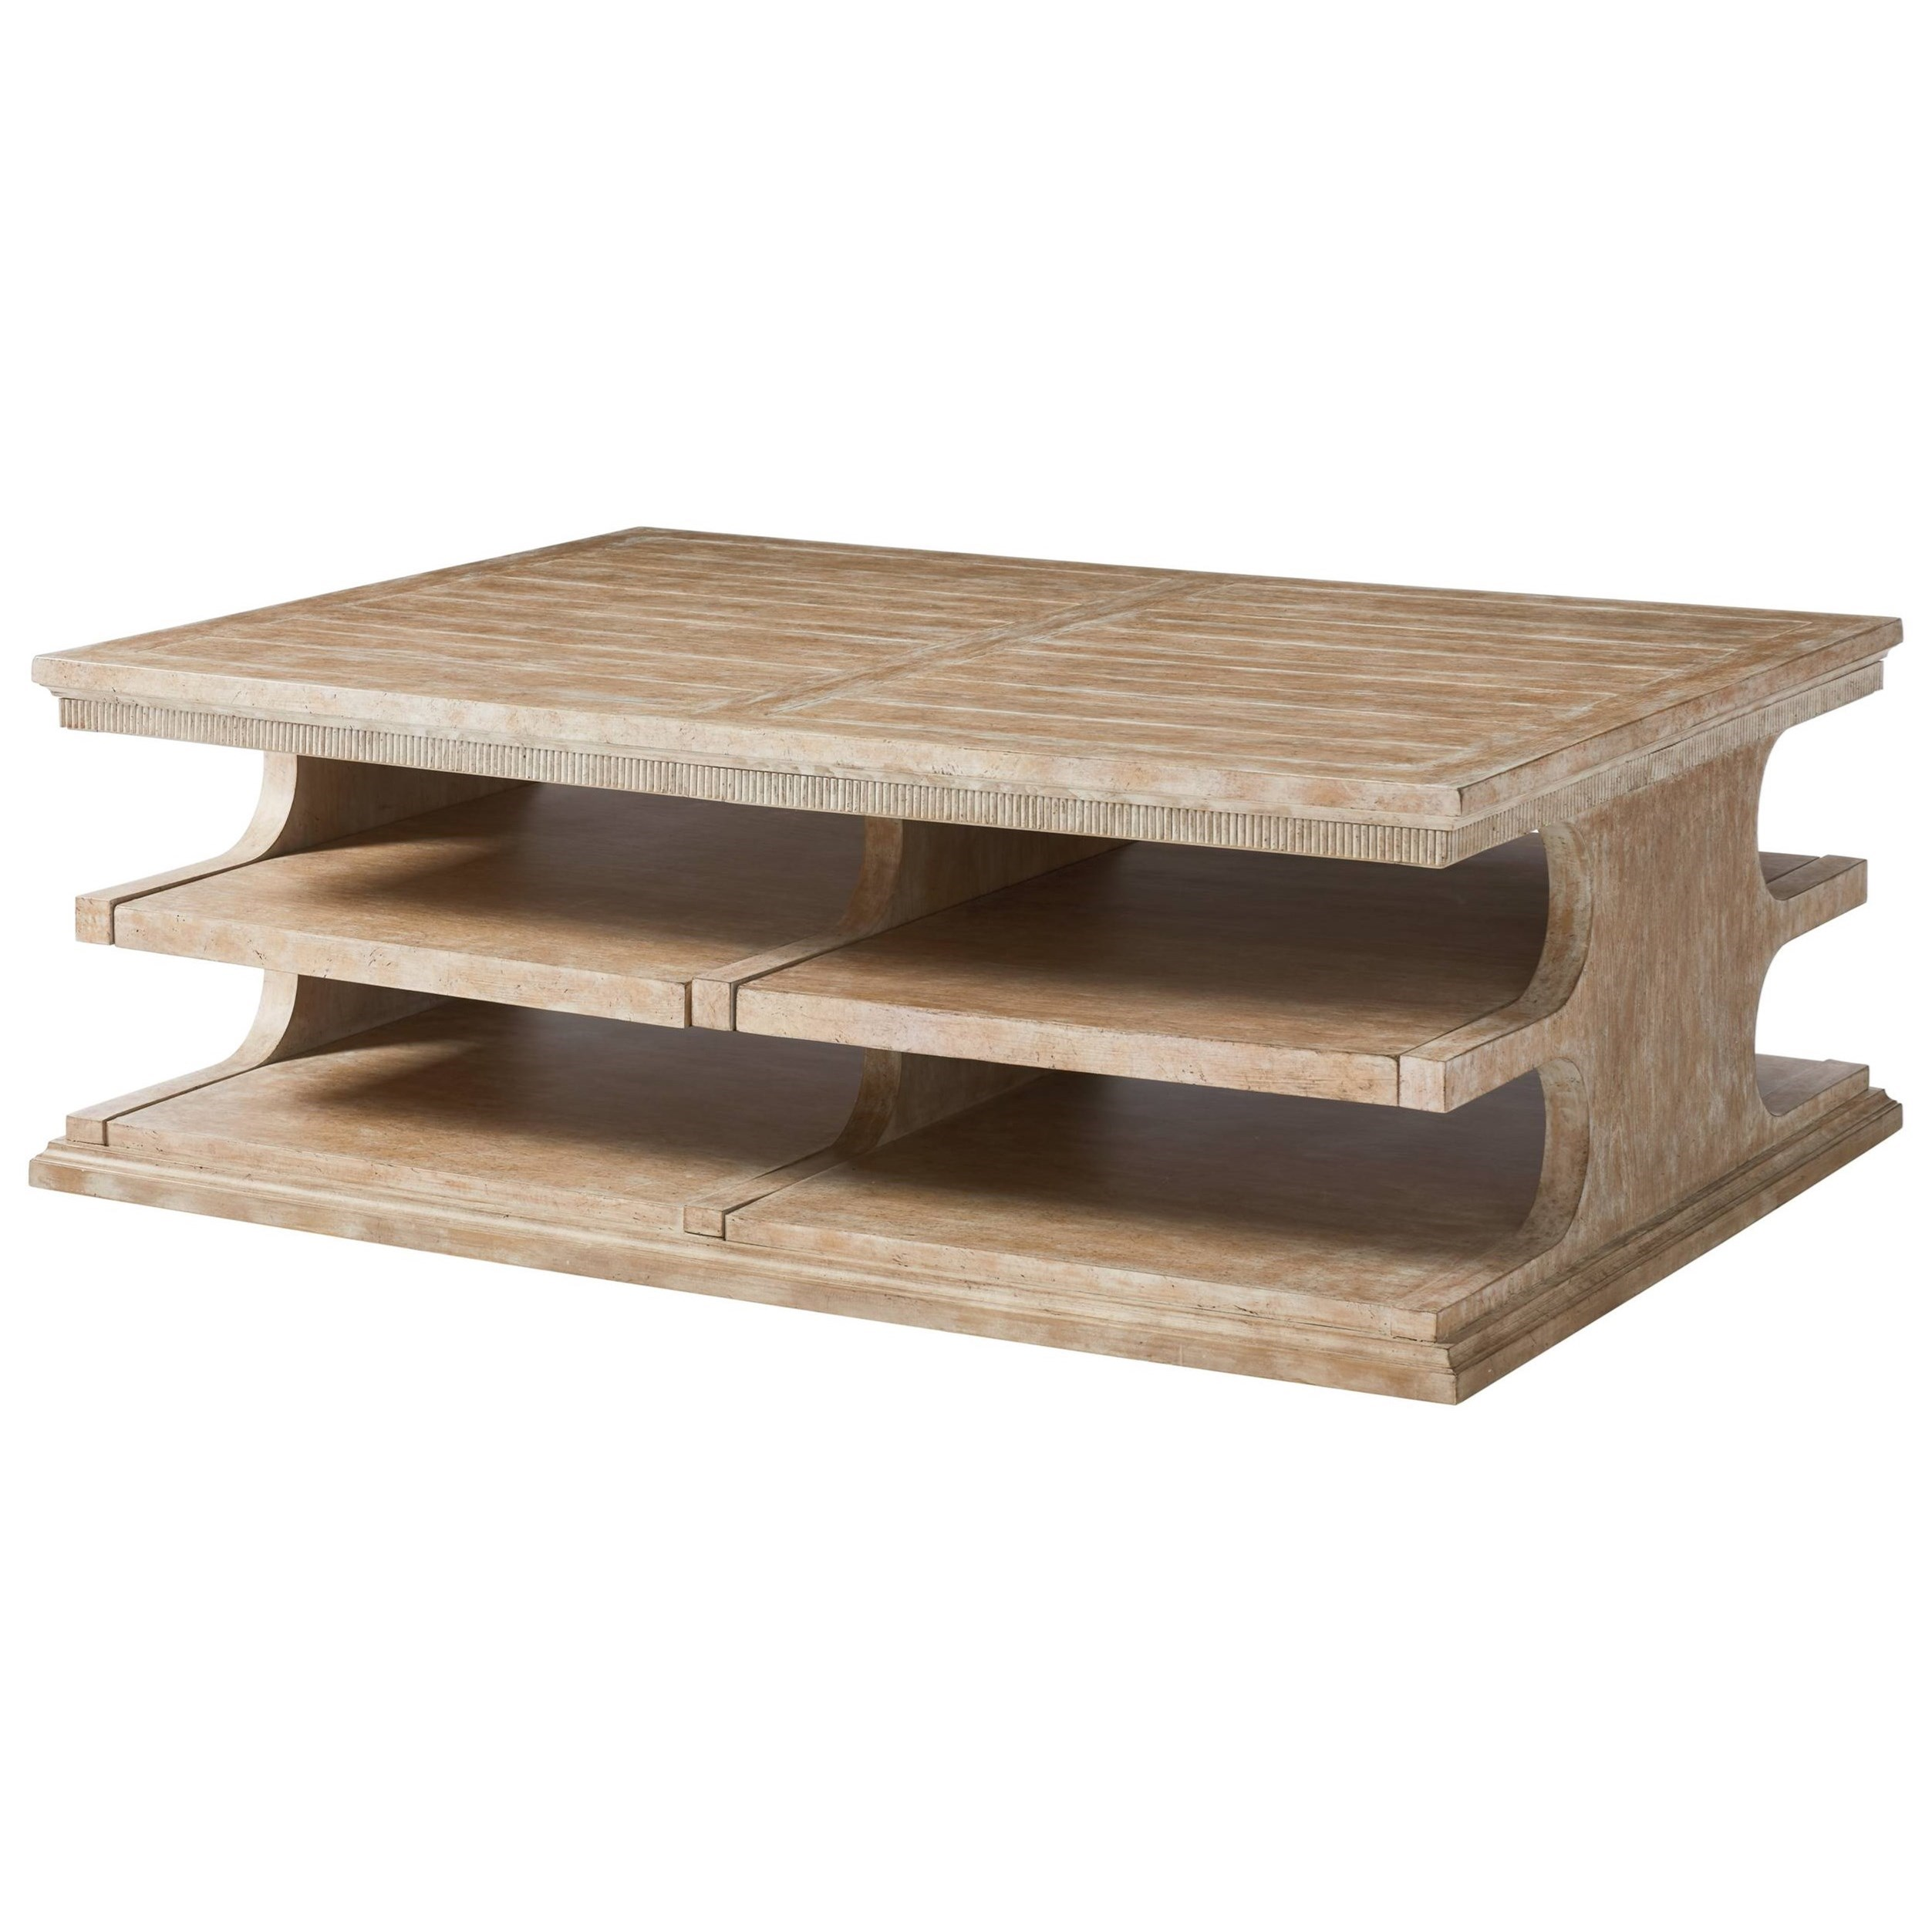 Stanley Furniture Juniper Dell Cocktail Table With Cantilevered Top Open Shelves Belfort